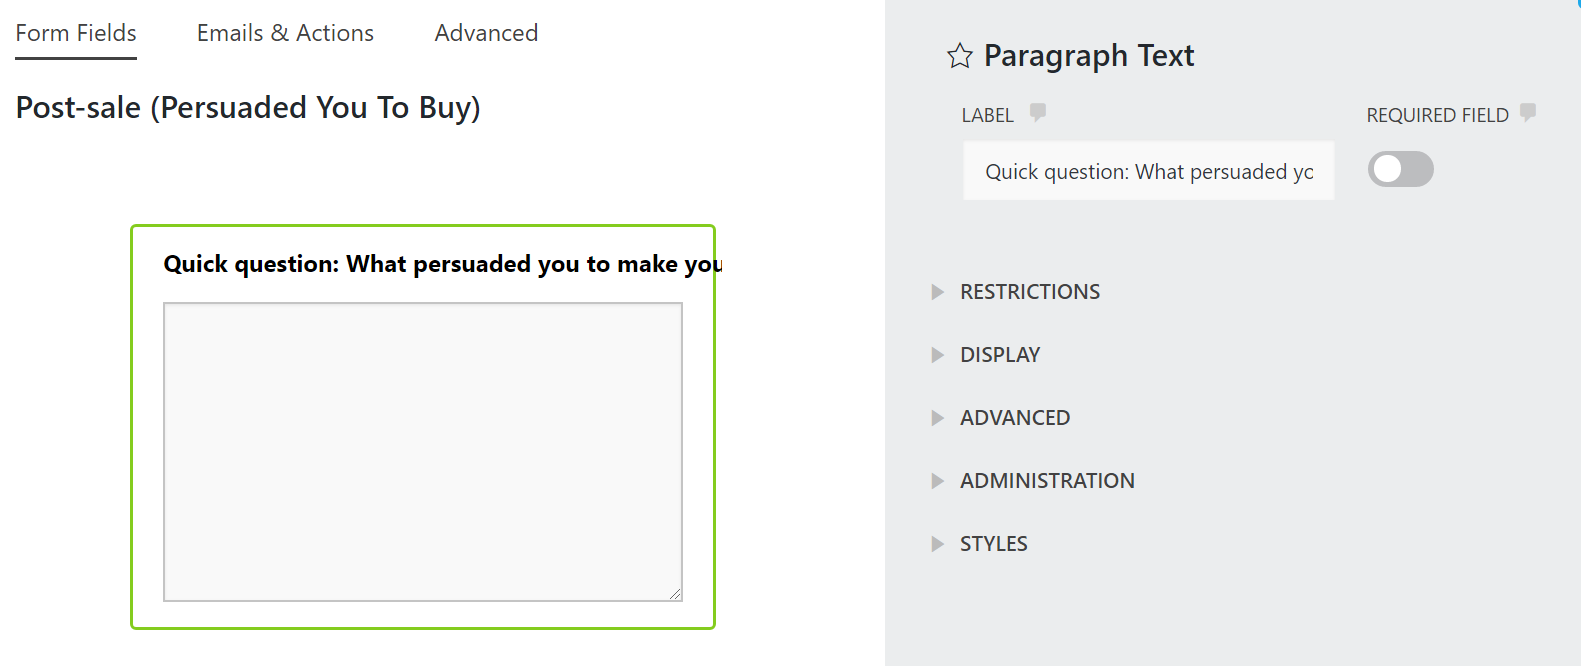 Settings for a paragraph text field in Ninja Forms